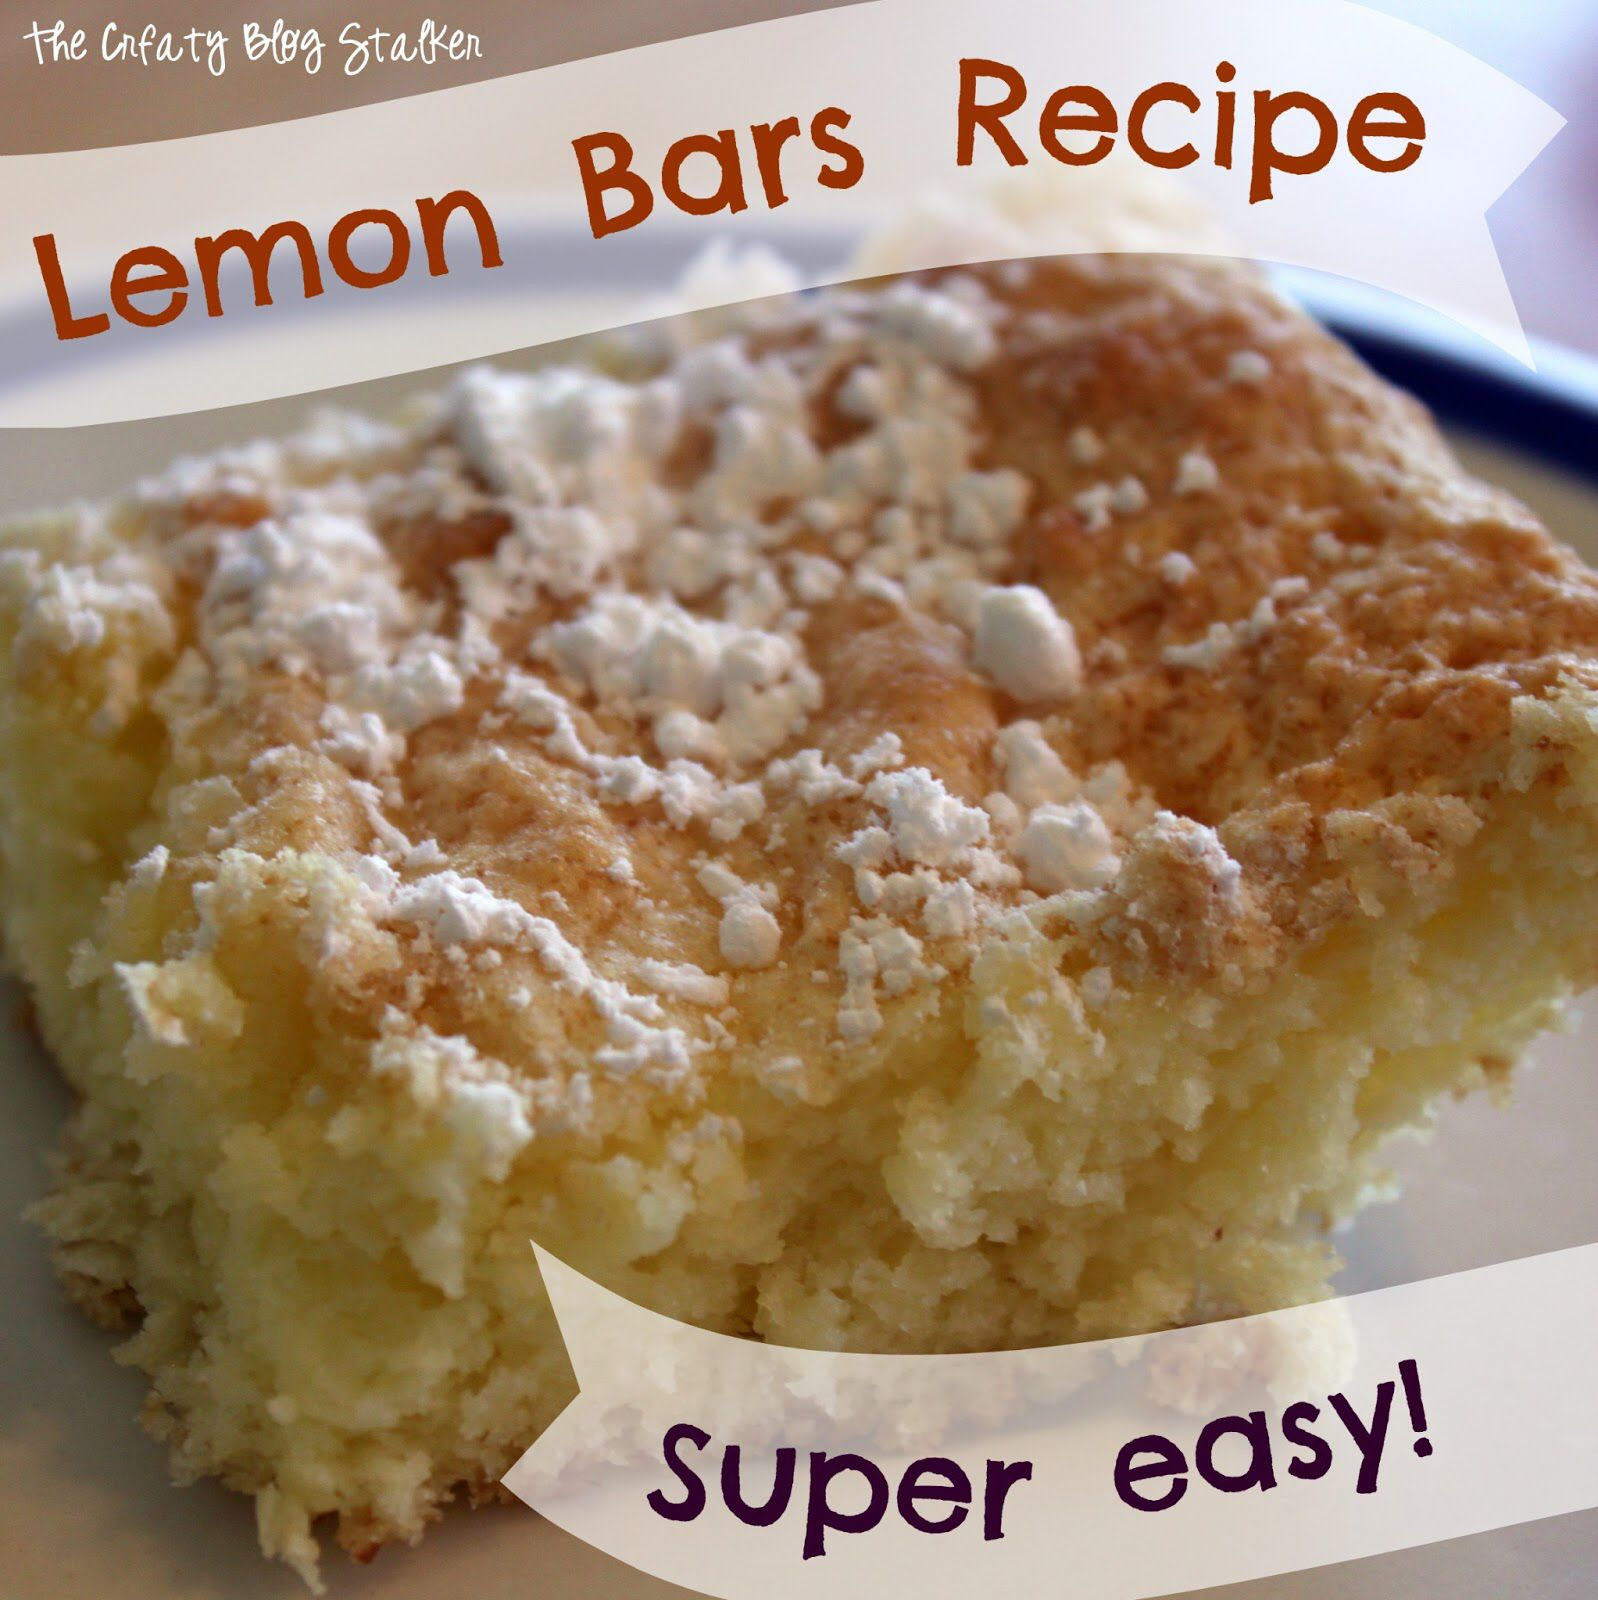 Pin by ess elle on food porn pinterest food porn and foods super easy lemon bars recipe angelfood cake mix and lemon pie filling only forumfinder Gallery